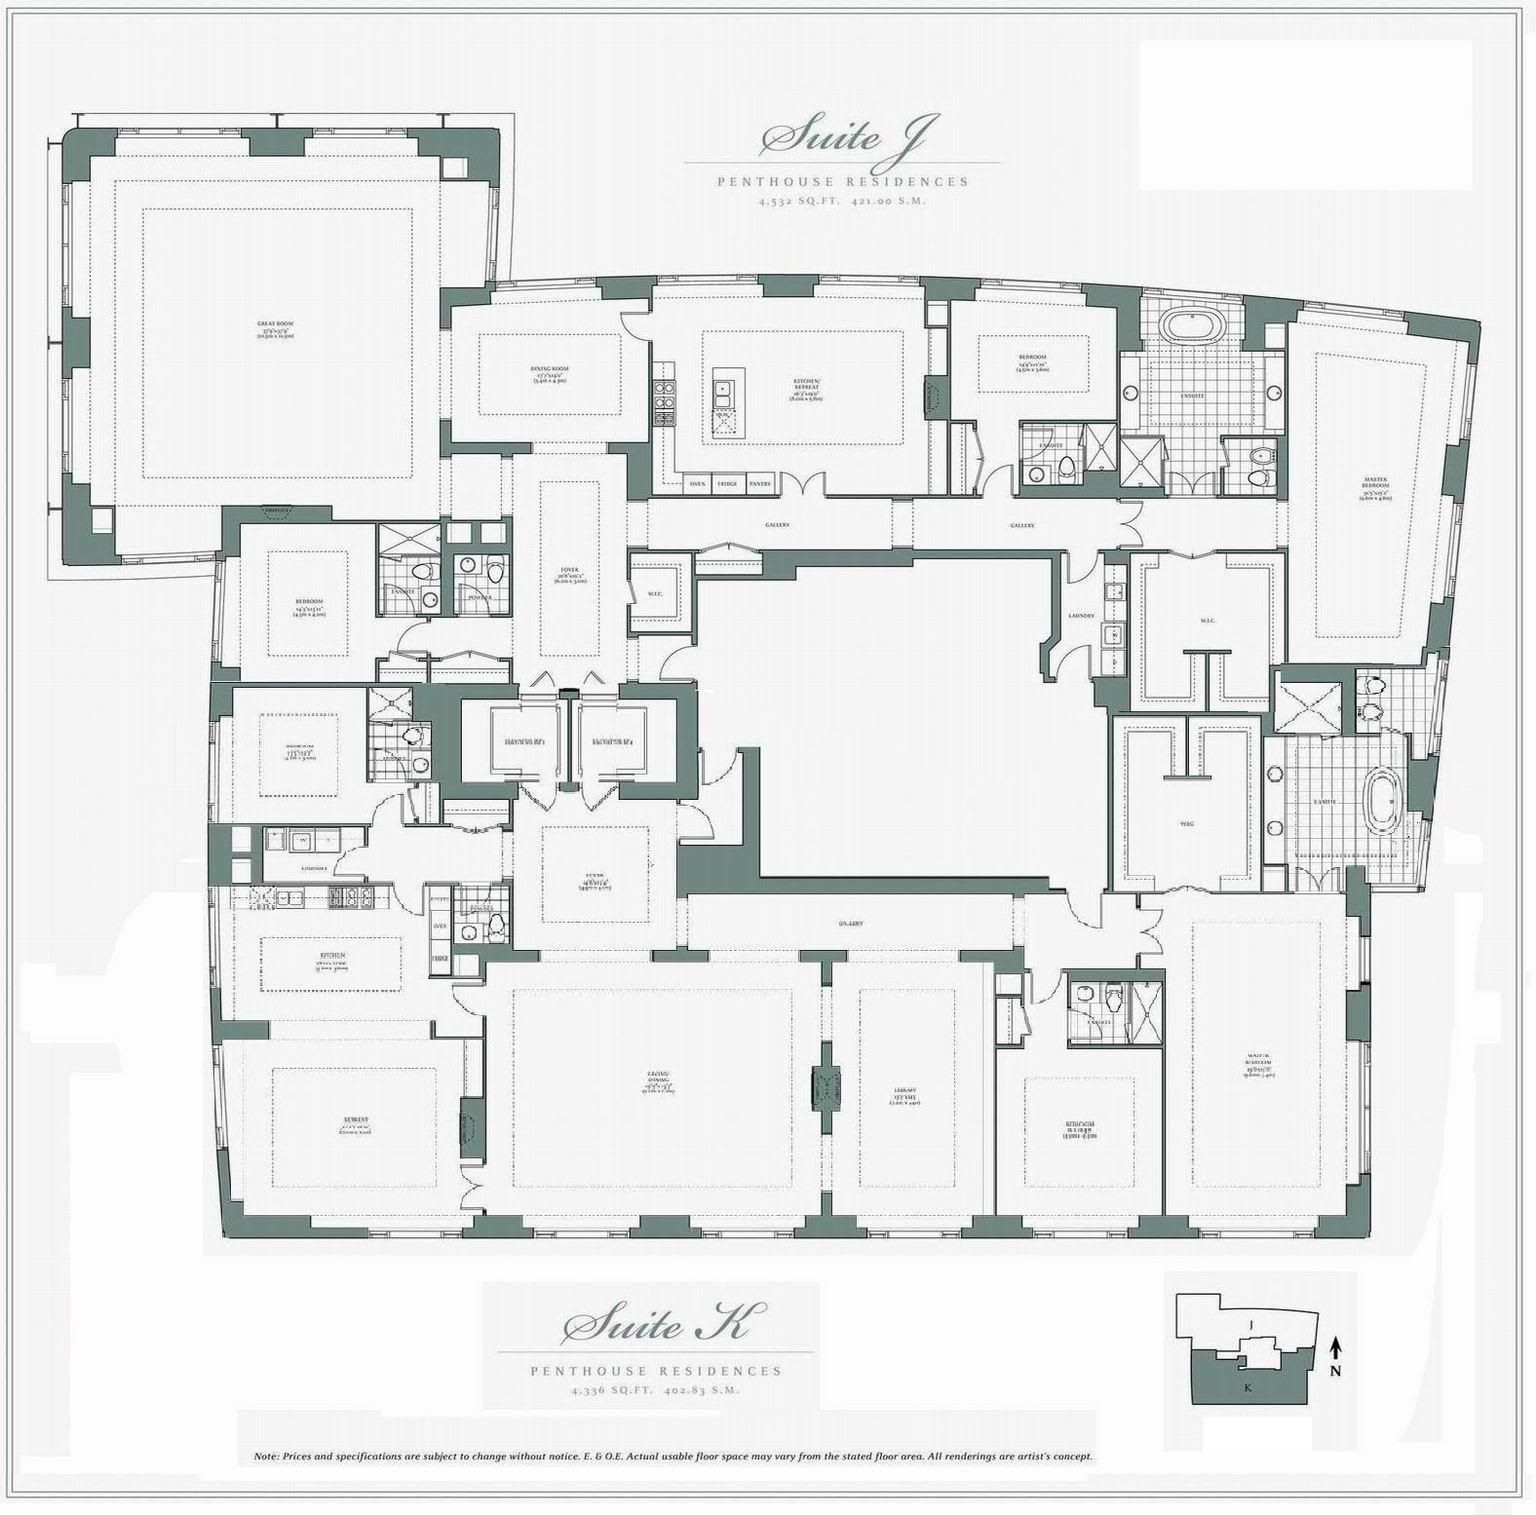 Best Apartment Finder Chicago: Penthouses In Chicago Floor Plans